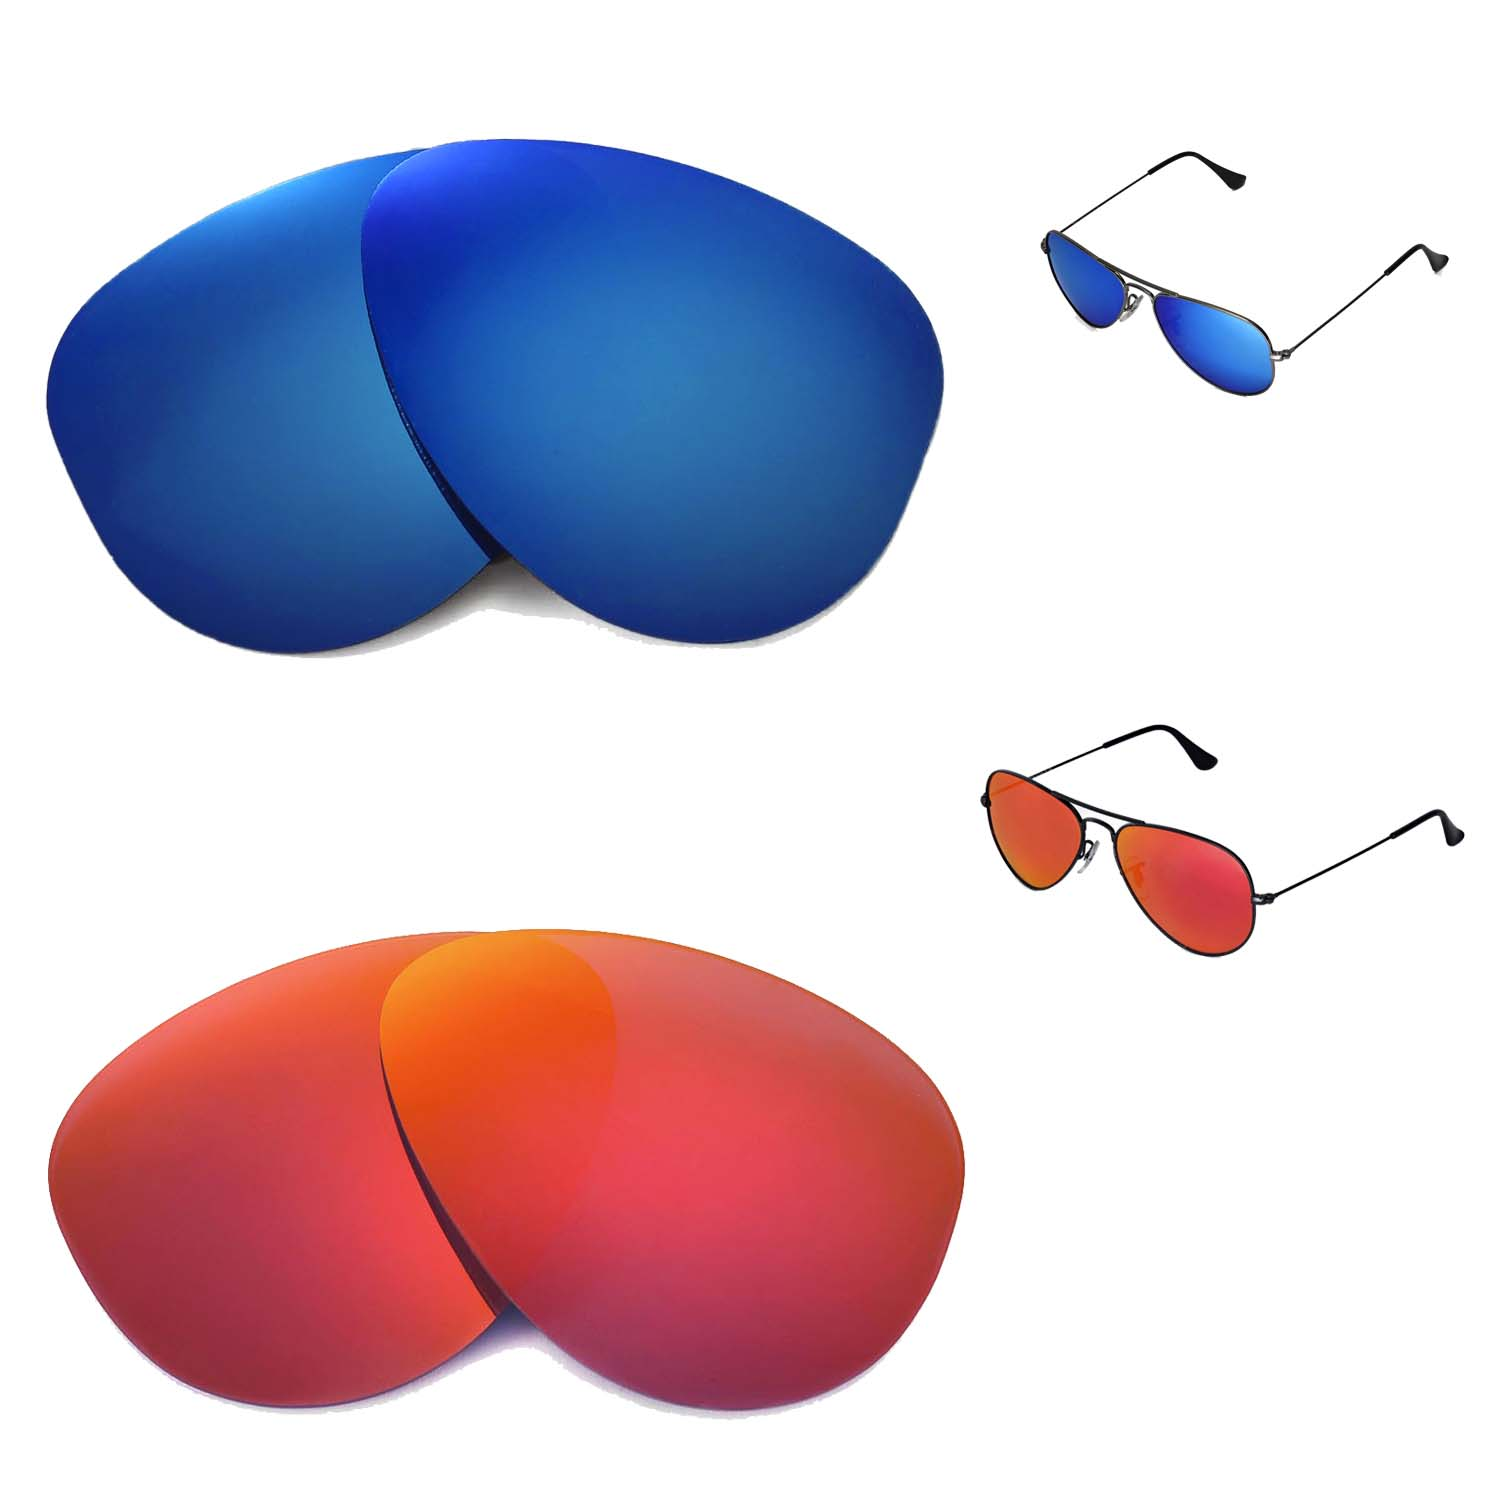 51f7301a33f Details about WL Polarized Fire Red+Ice Blue Lenses 4 Ray-Ban Aviator  RB3044 Small Metal 52mm